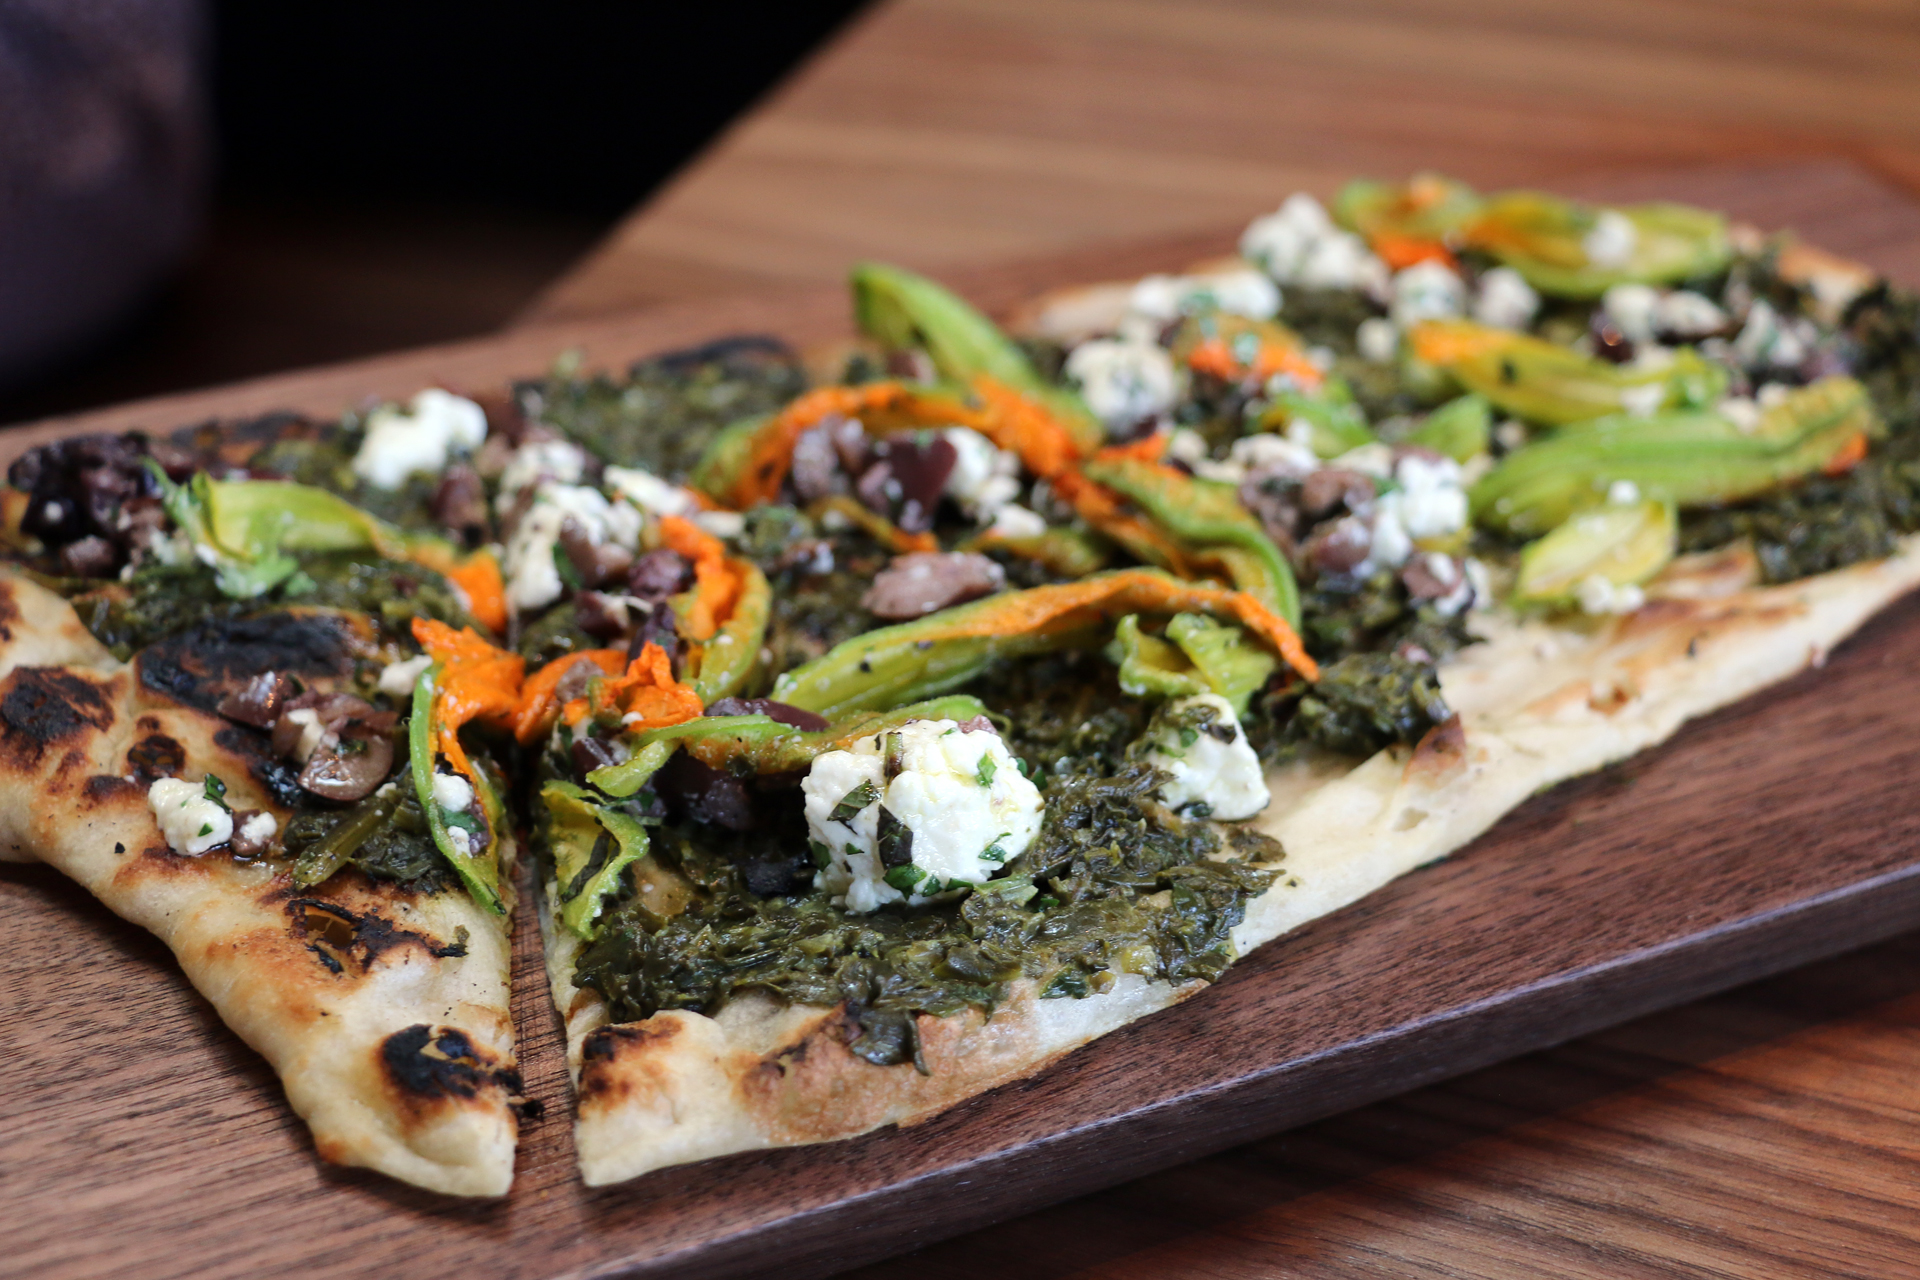 Flatbread with spinach, feta, squash blossoms, and olives from the wood-burning oven.